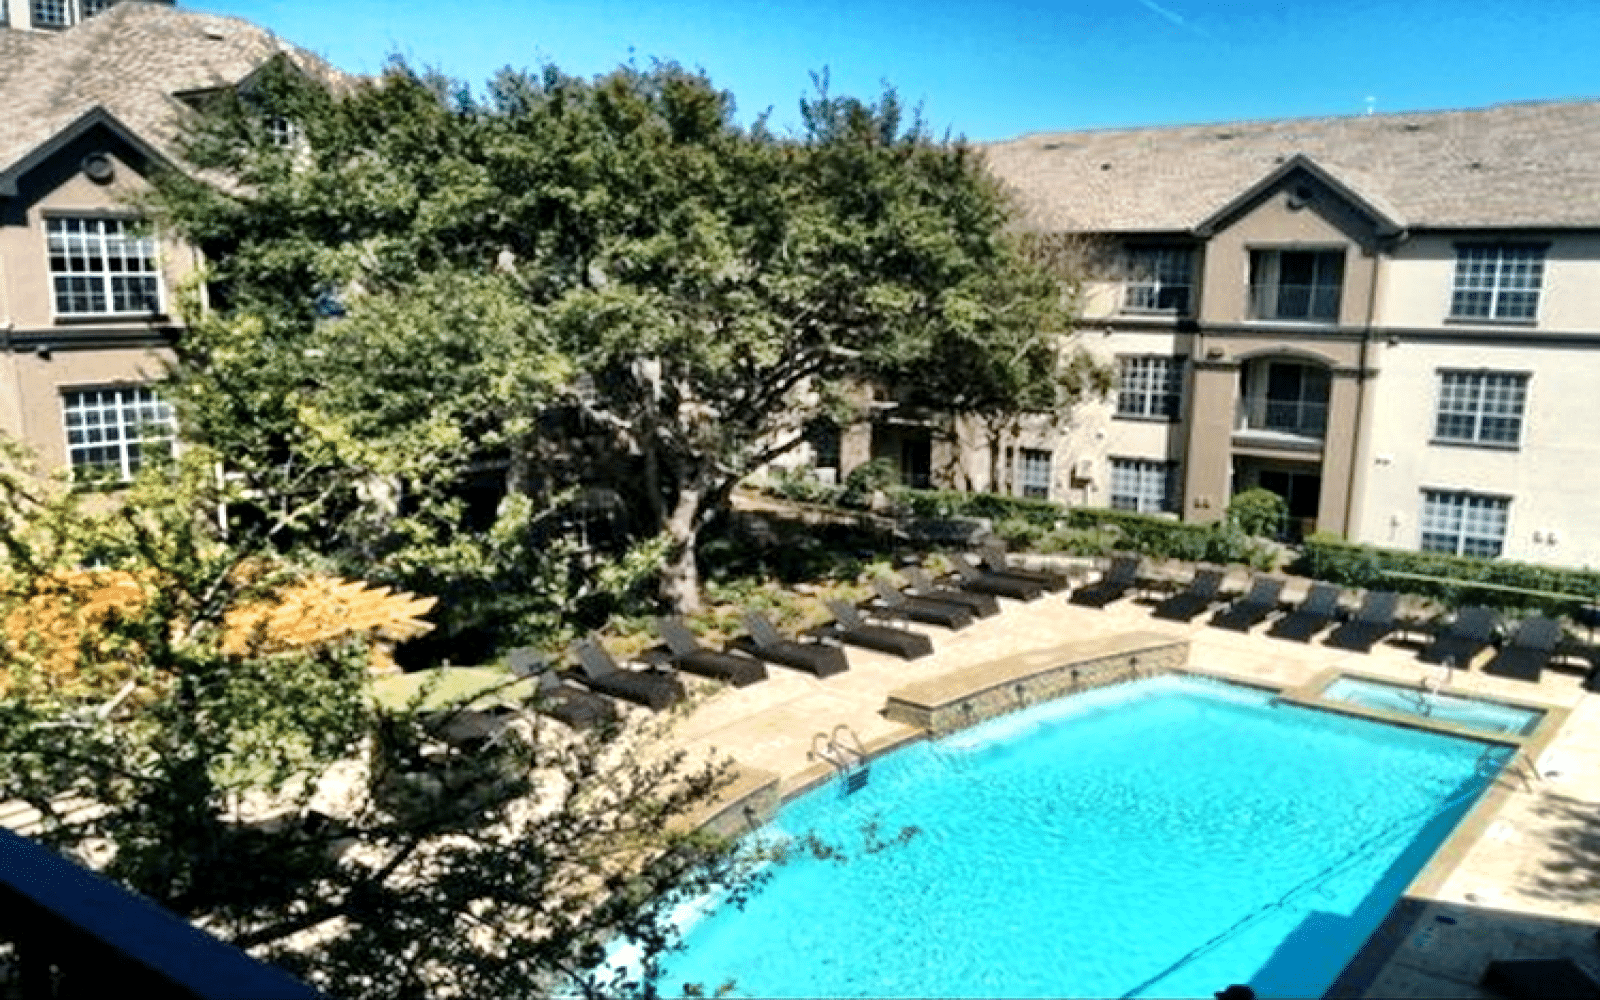 4000 Essex Ln,Houston,77027,Apartment,Essex Ln,2906